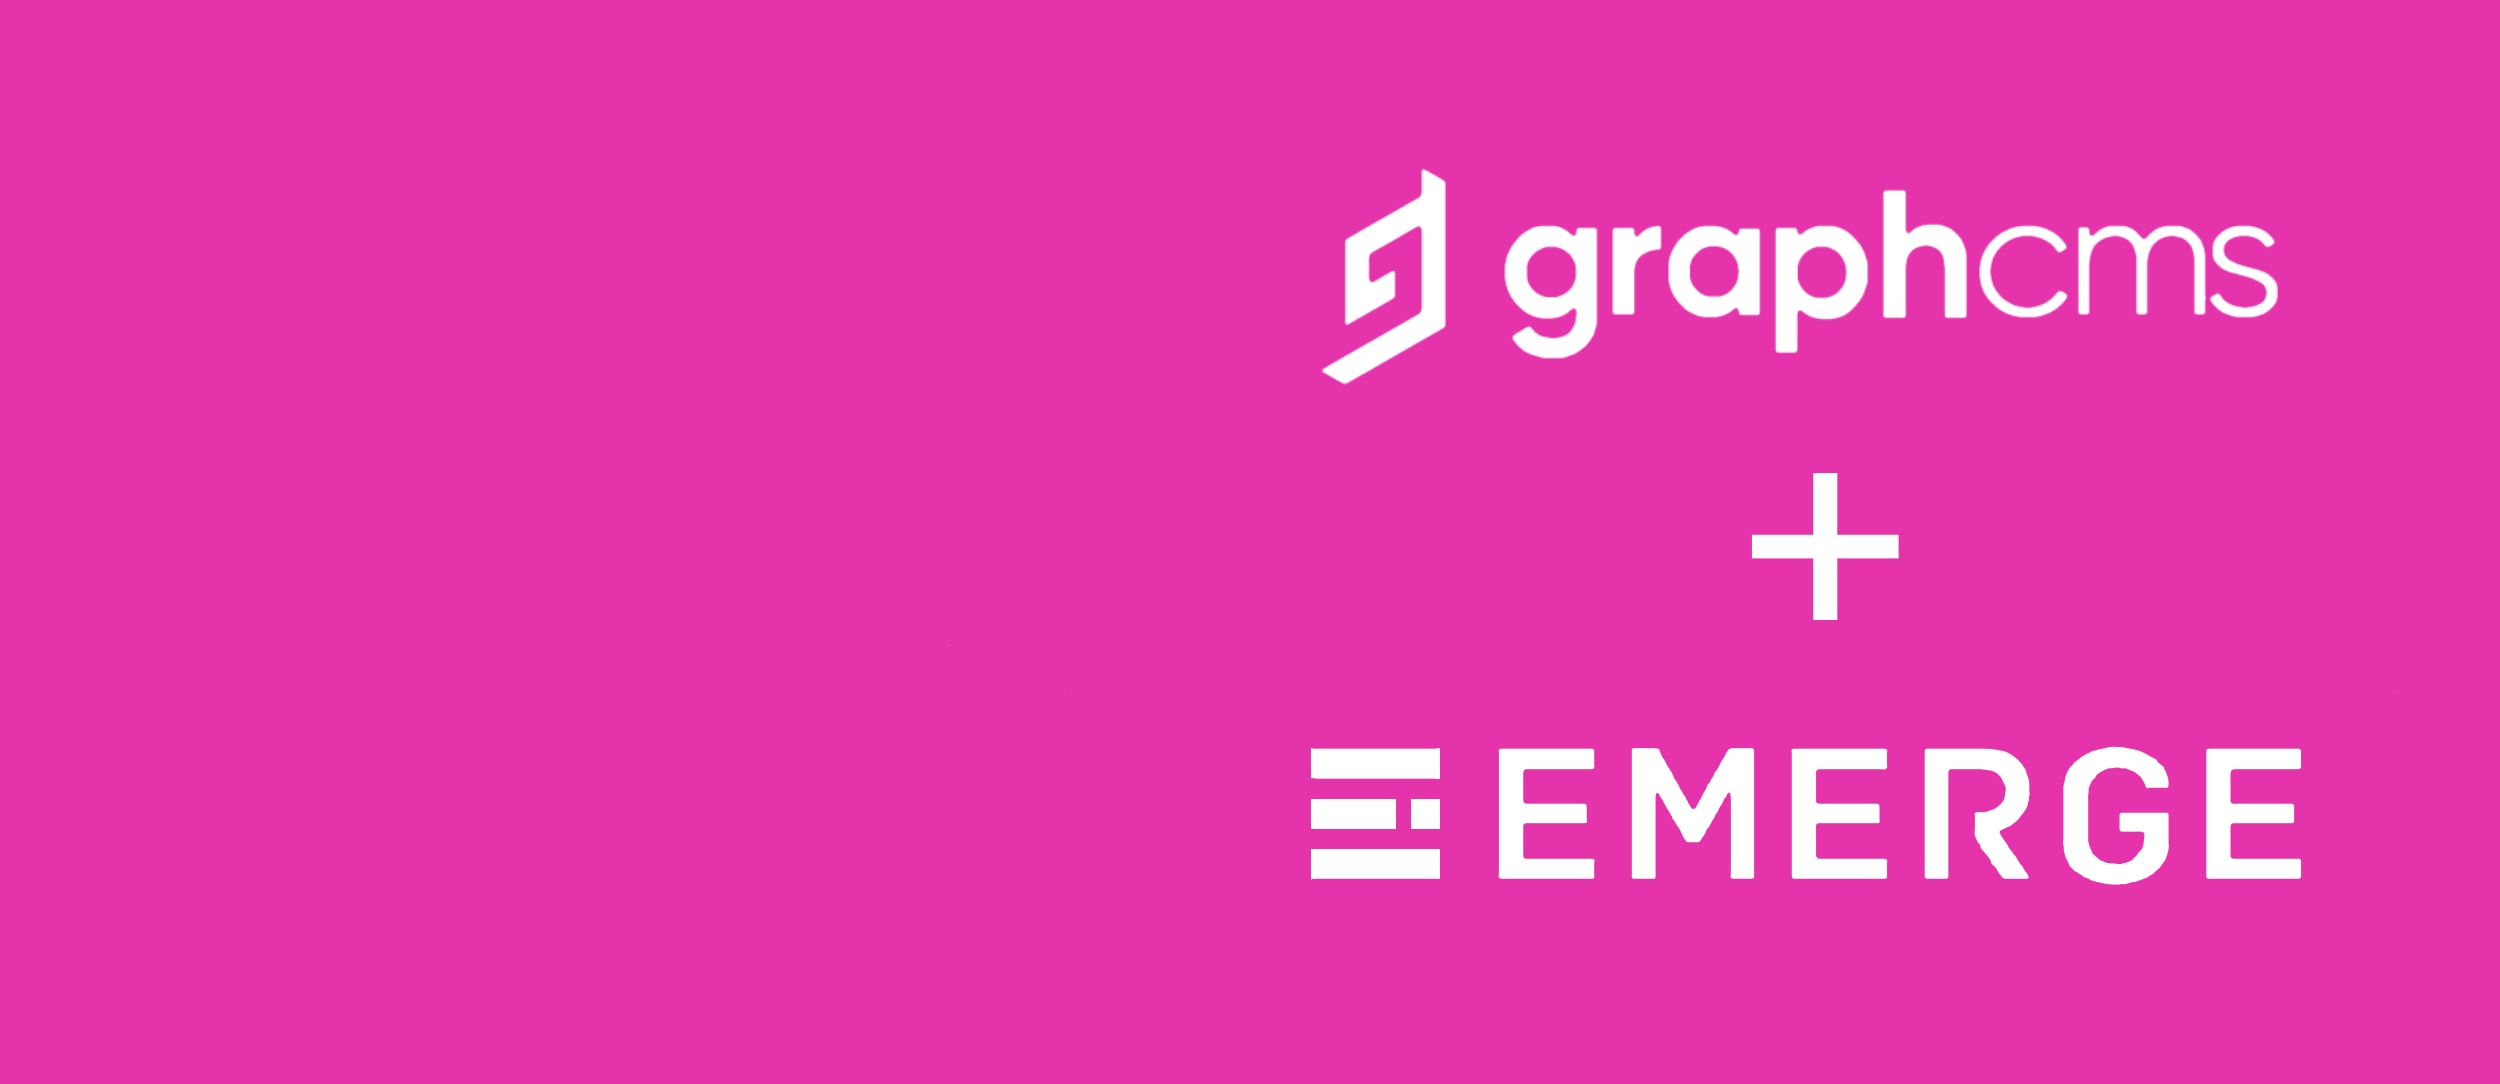 Emerge Joins GraphCMS Partner Network